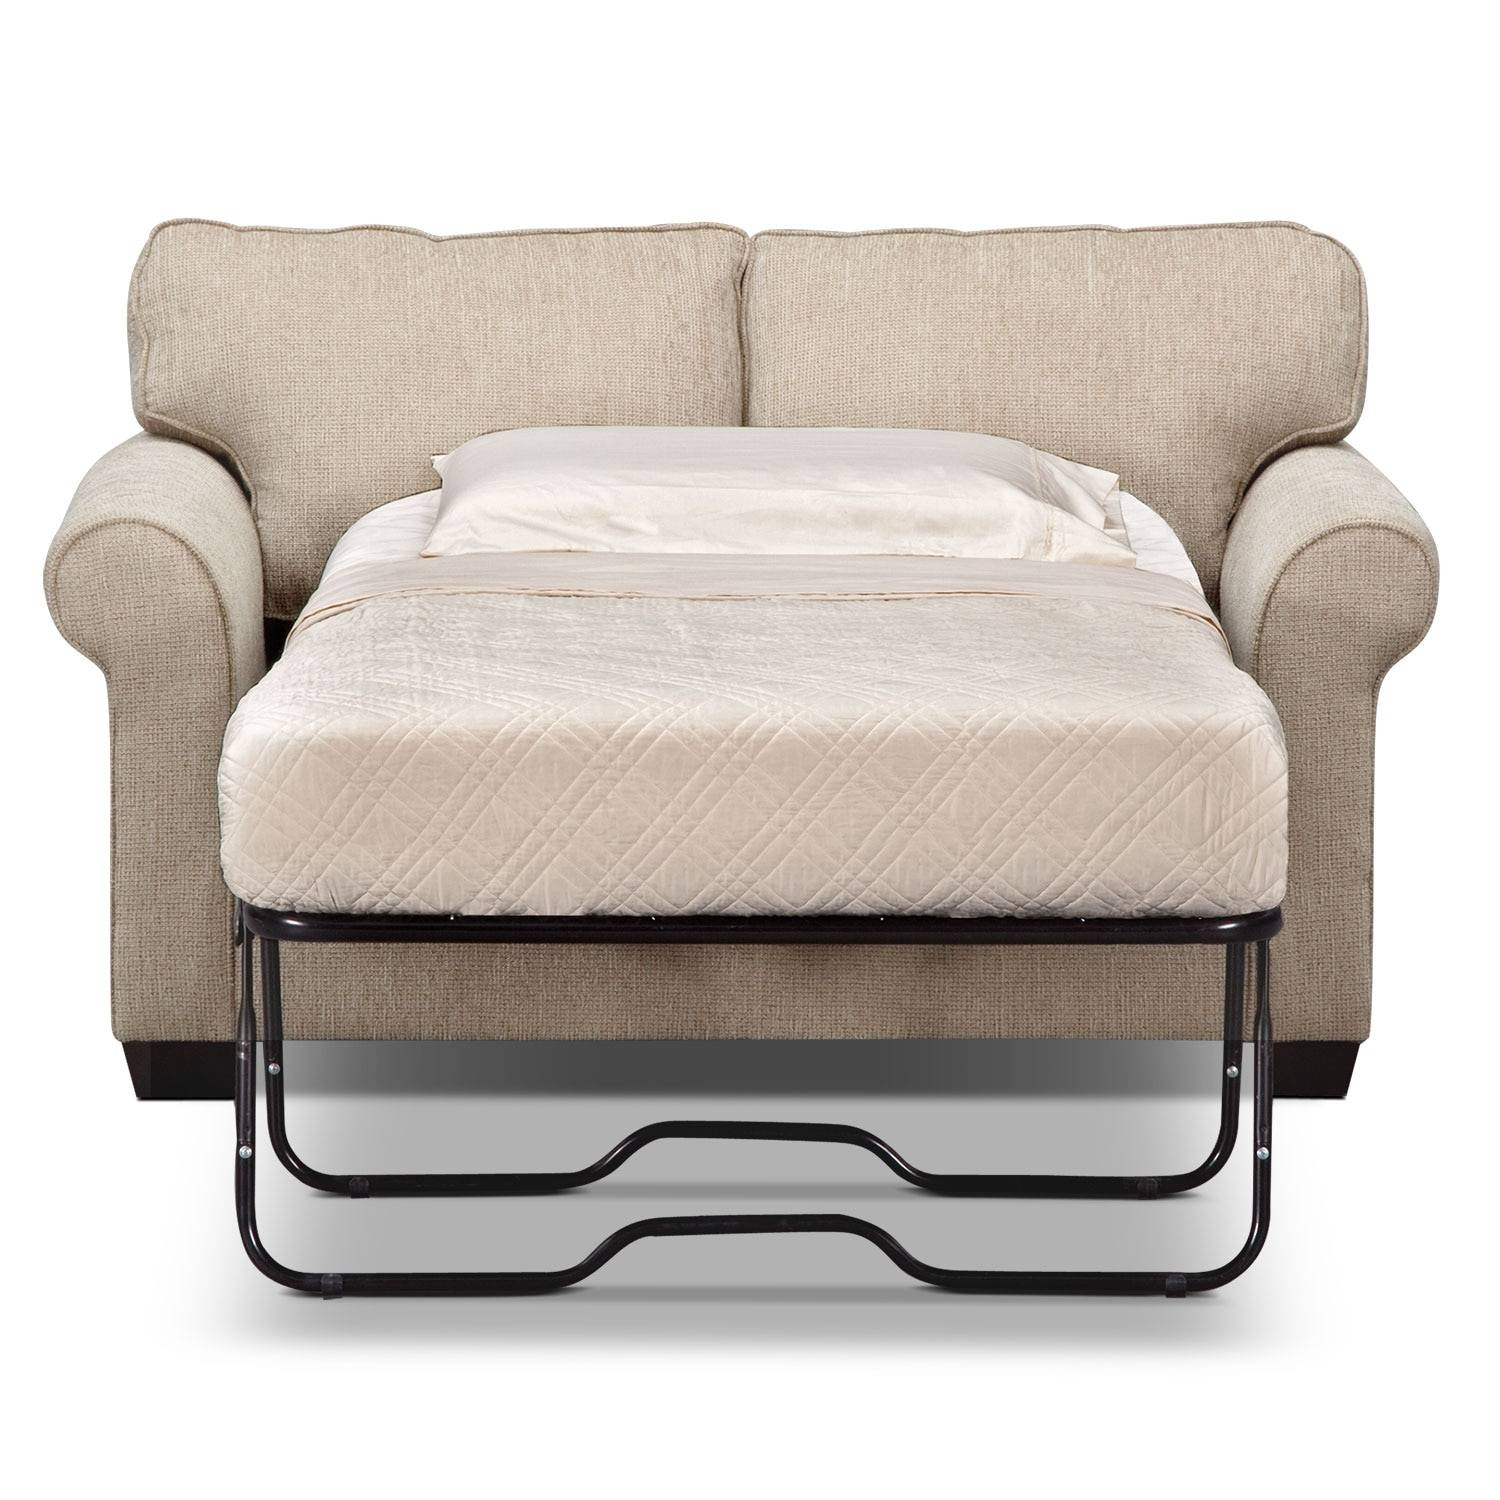 Fletcher Twin Memory Foam Sleeper Sofa - Beige | Value City Furniture pertaining to Twin Sleeper Sofa Chairs (Image 7 of 30)